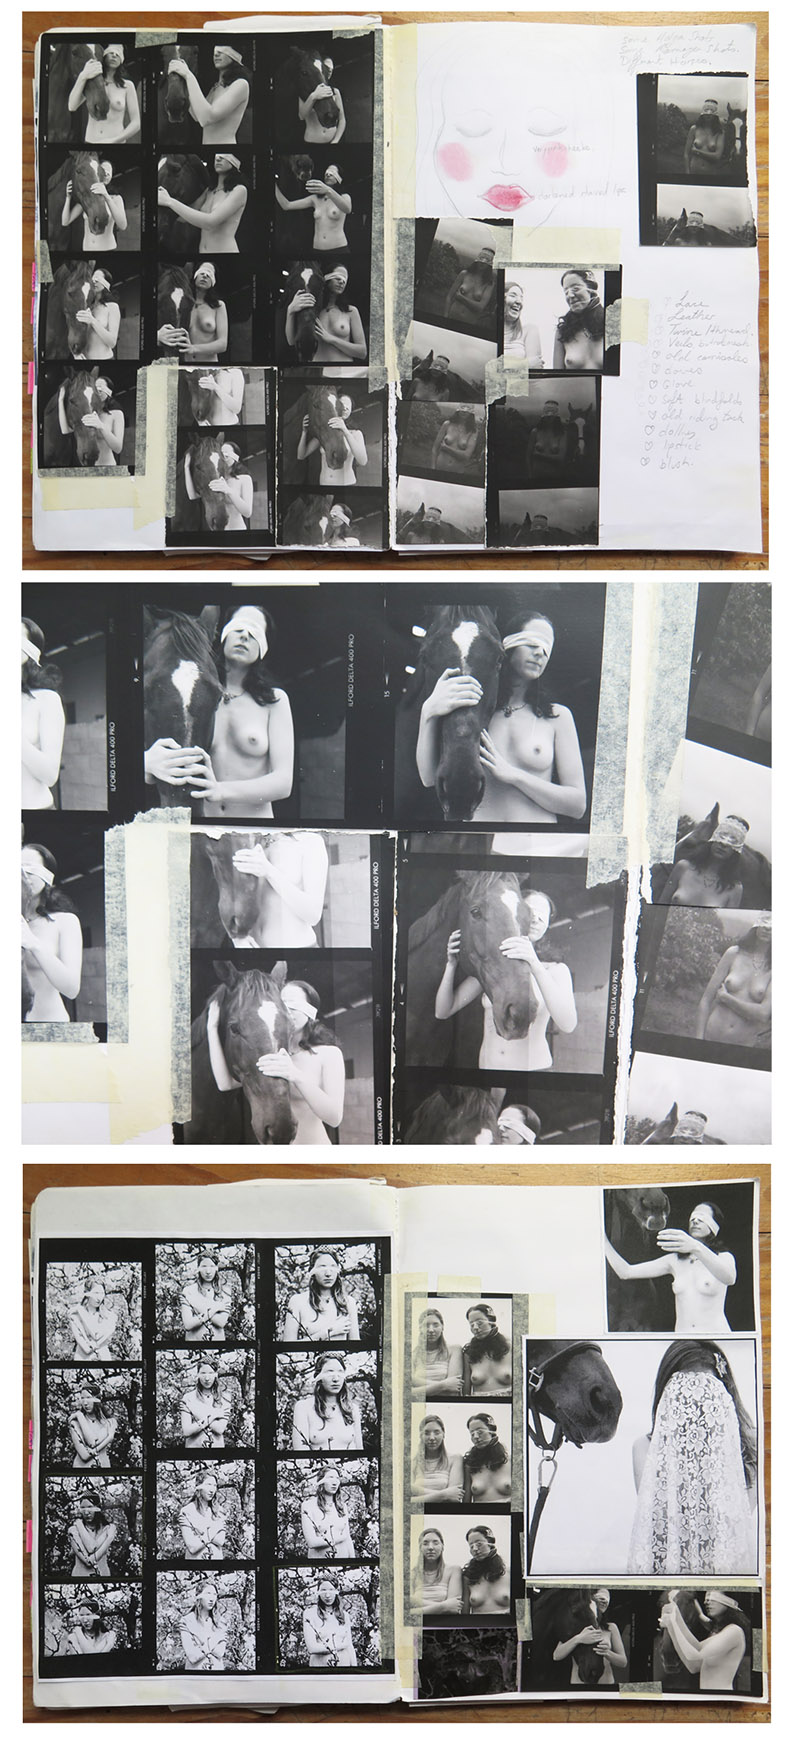 Details from my visual diary during The Debut Girls production.